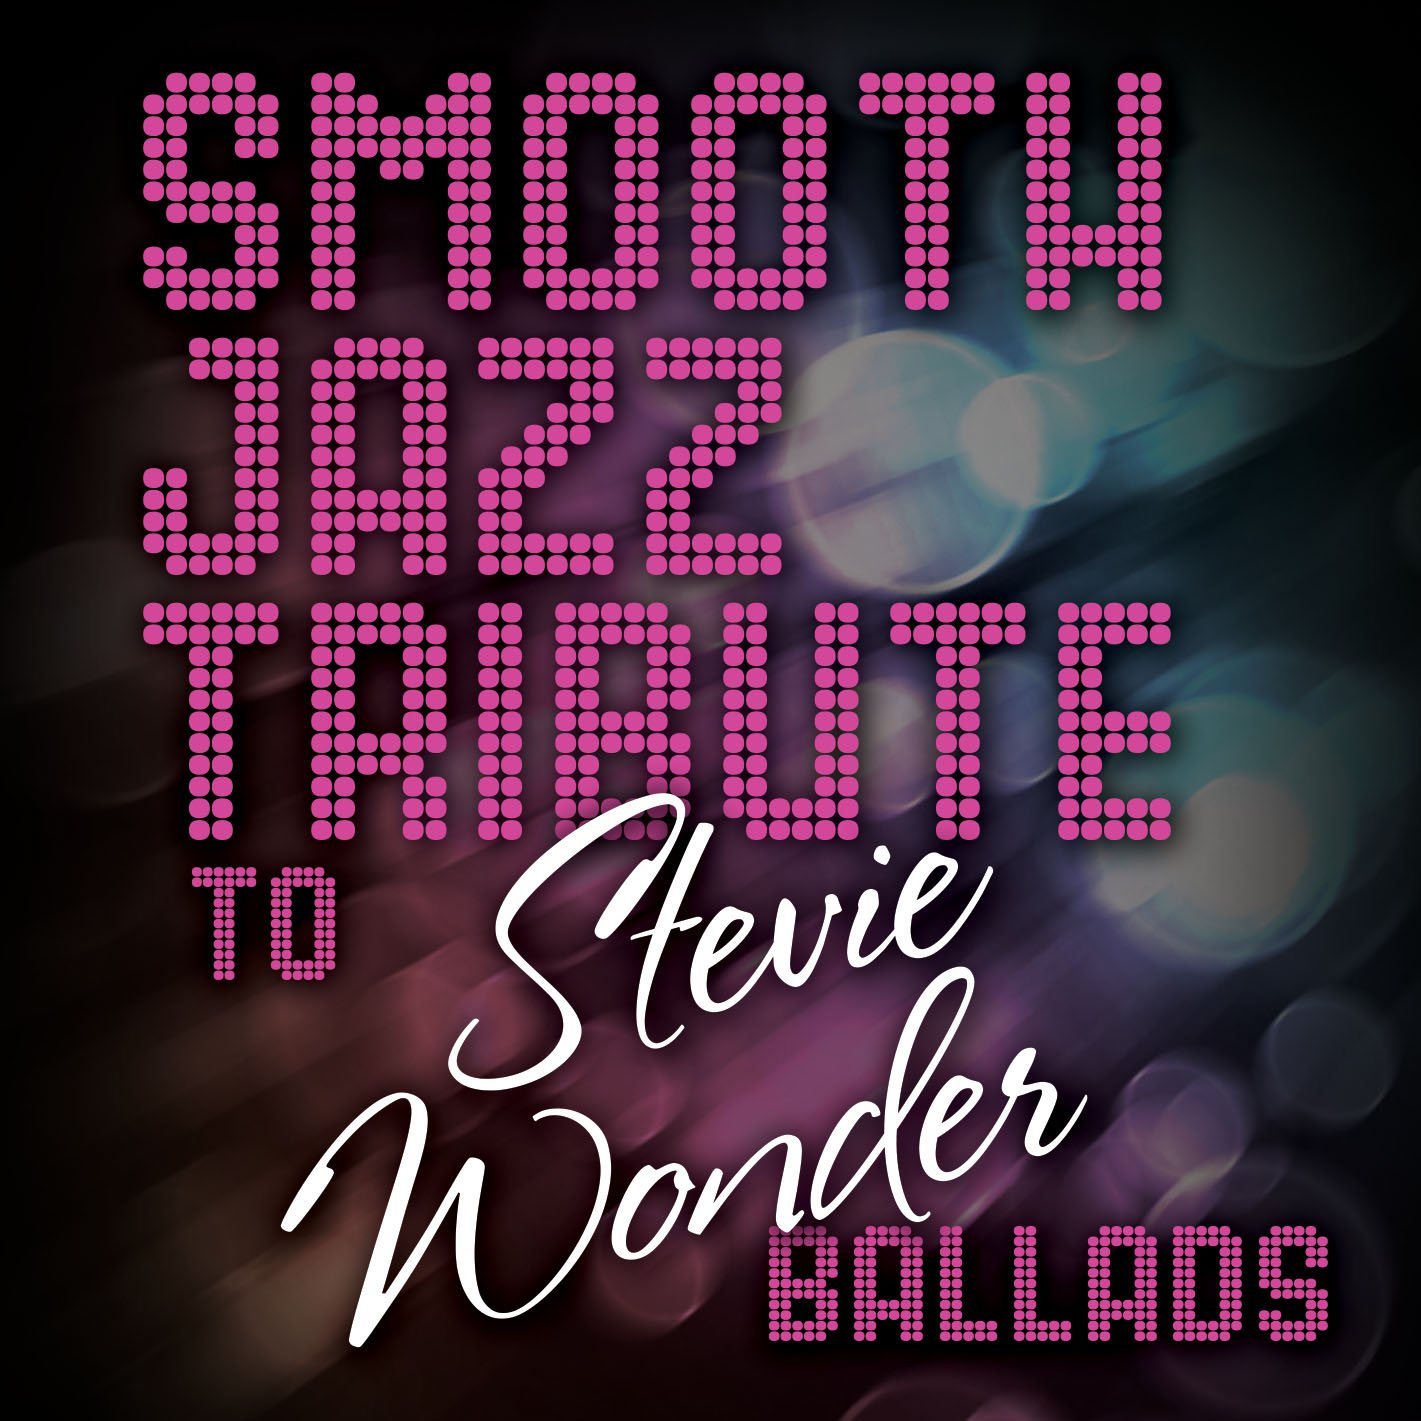 Smooth Jazz Tribute to Stevie Wonder by CC ENT / COPYCATS